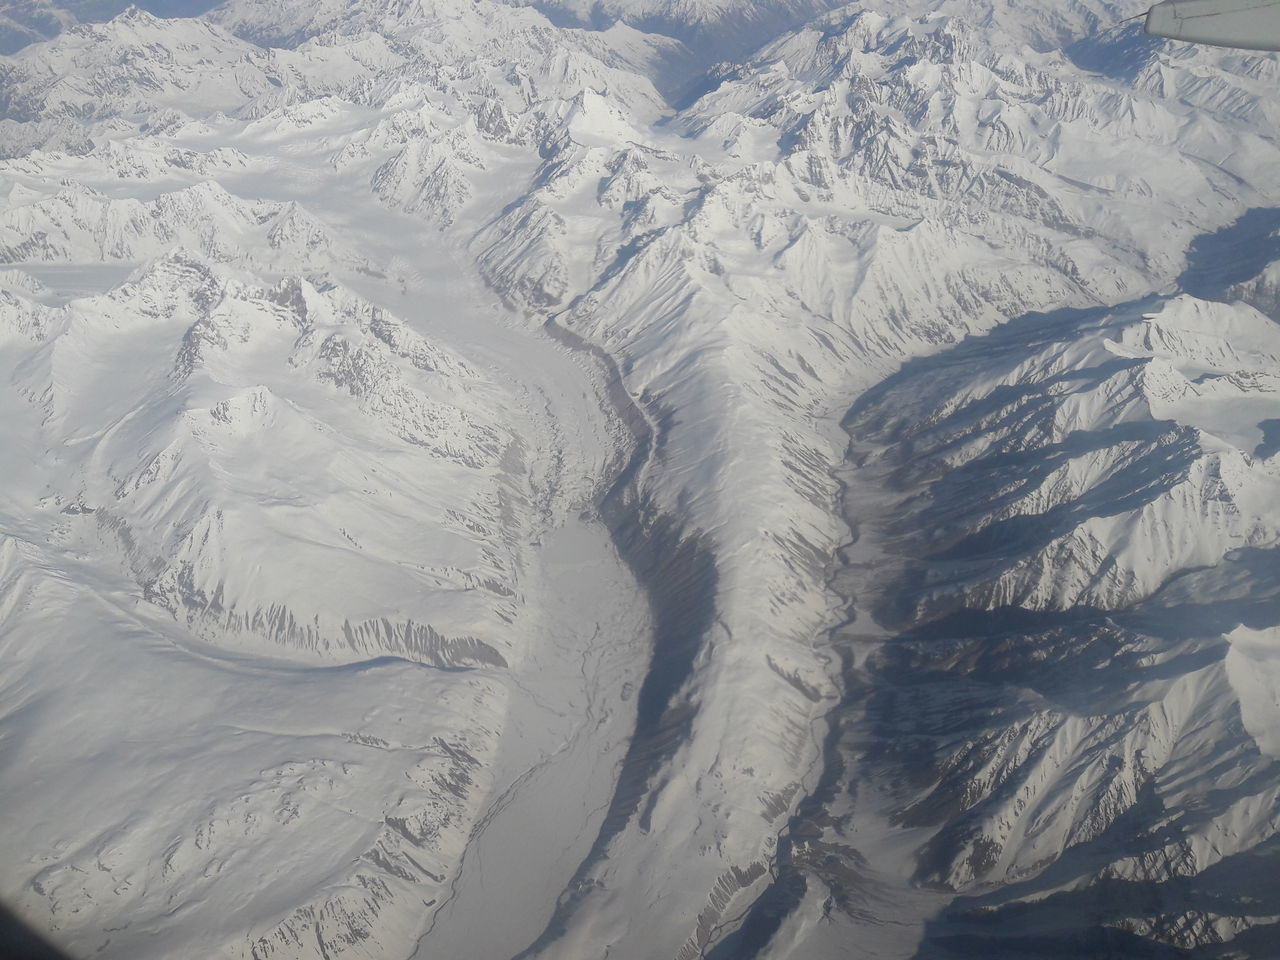 Aerial Photography Aerial View Airplane Airplane Wing Beauty In Nature Clear Sky EyeEm Best Shots Himalayas Landscape Mounatins Mountain Mountain Range Serenity Sky And Clouds Snow Tranquil Scene Tranquility Vacations View From Above Wanderlust